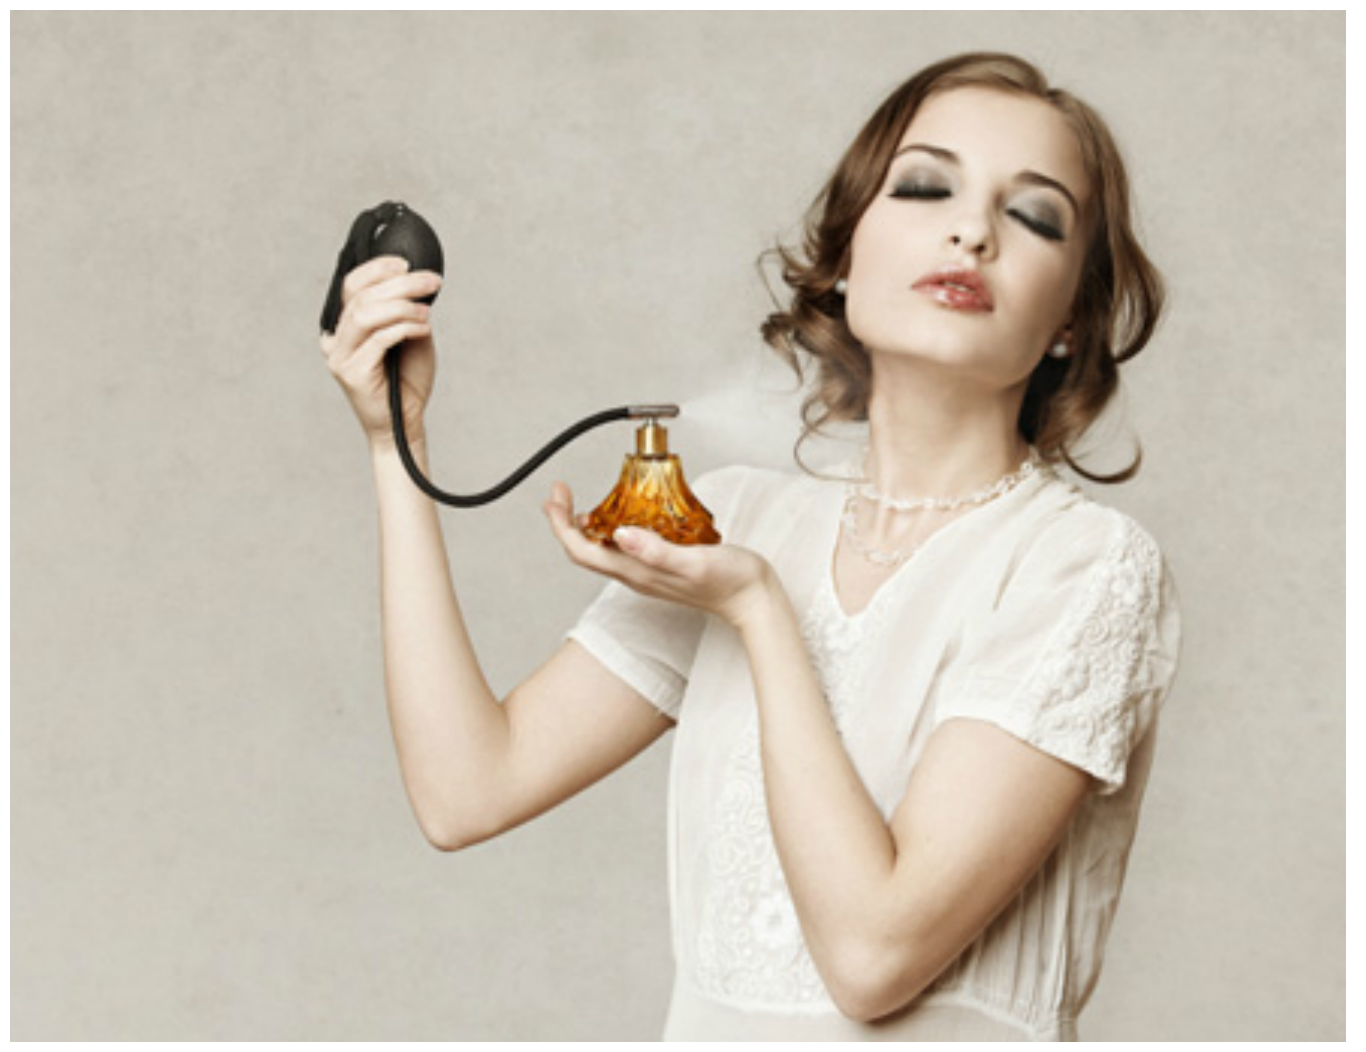 Fragrance Etiquette: How Much Fragrance Is Enough?